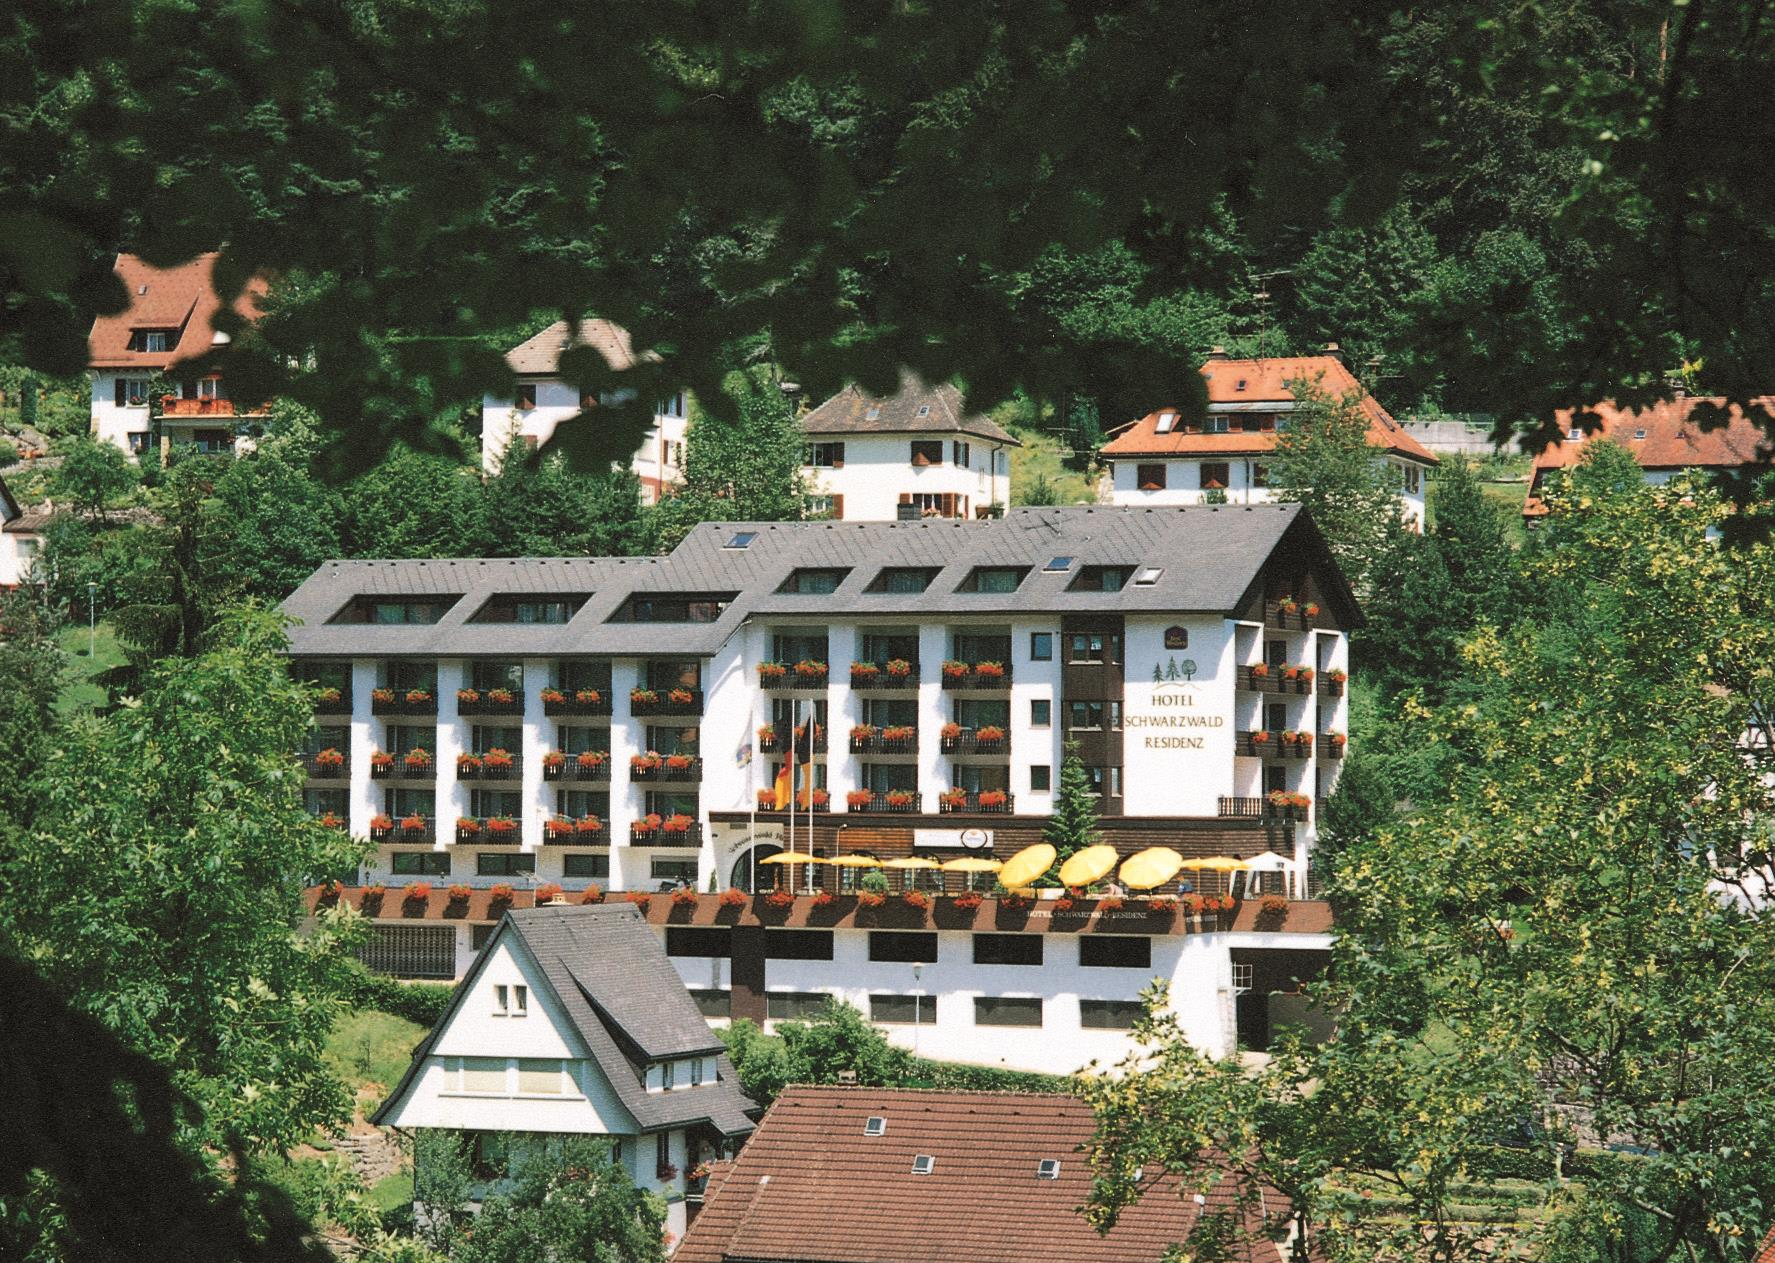 Best western plus hotel schwarzwald residenz hotels for Design hotel schwarzwald